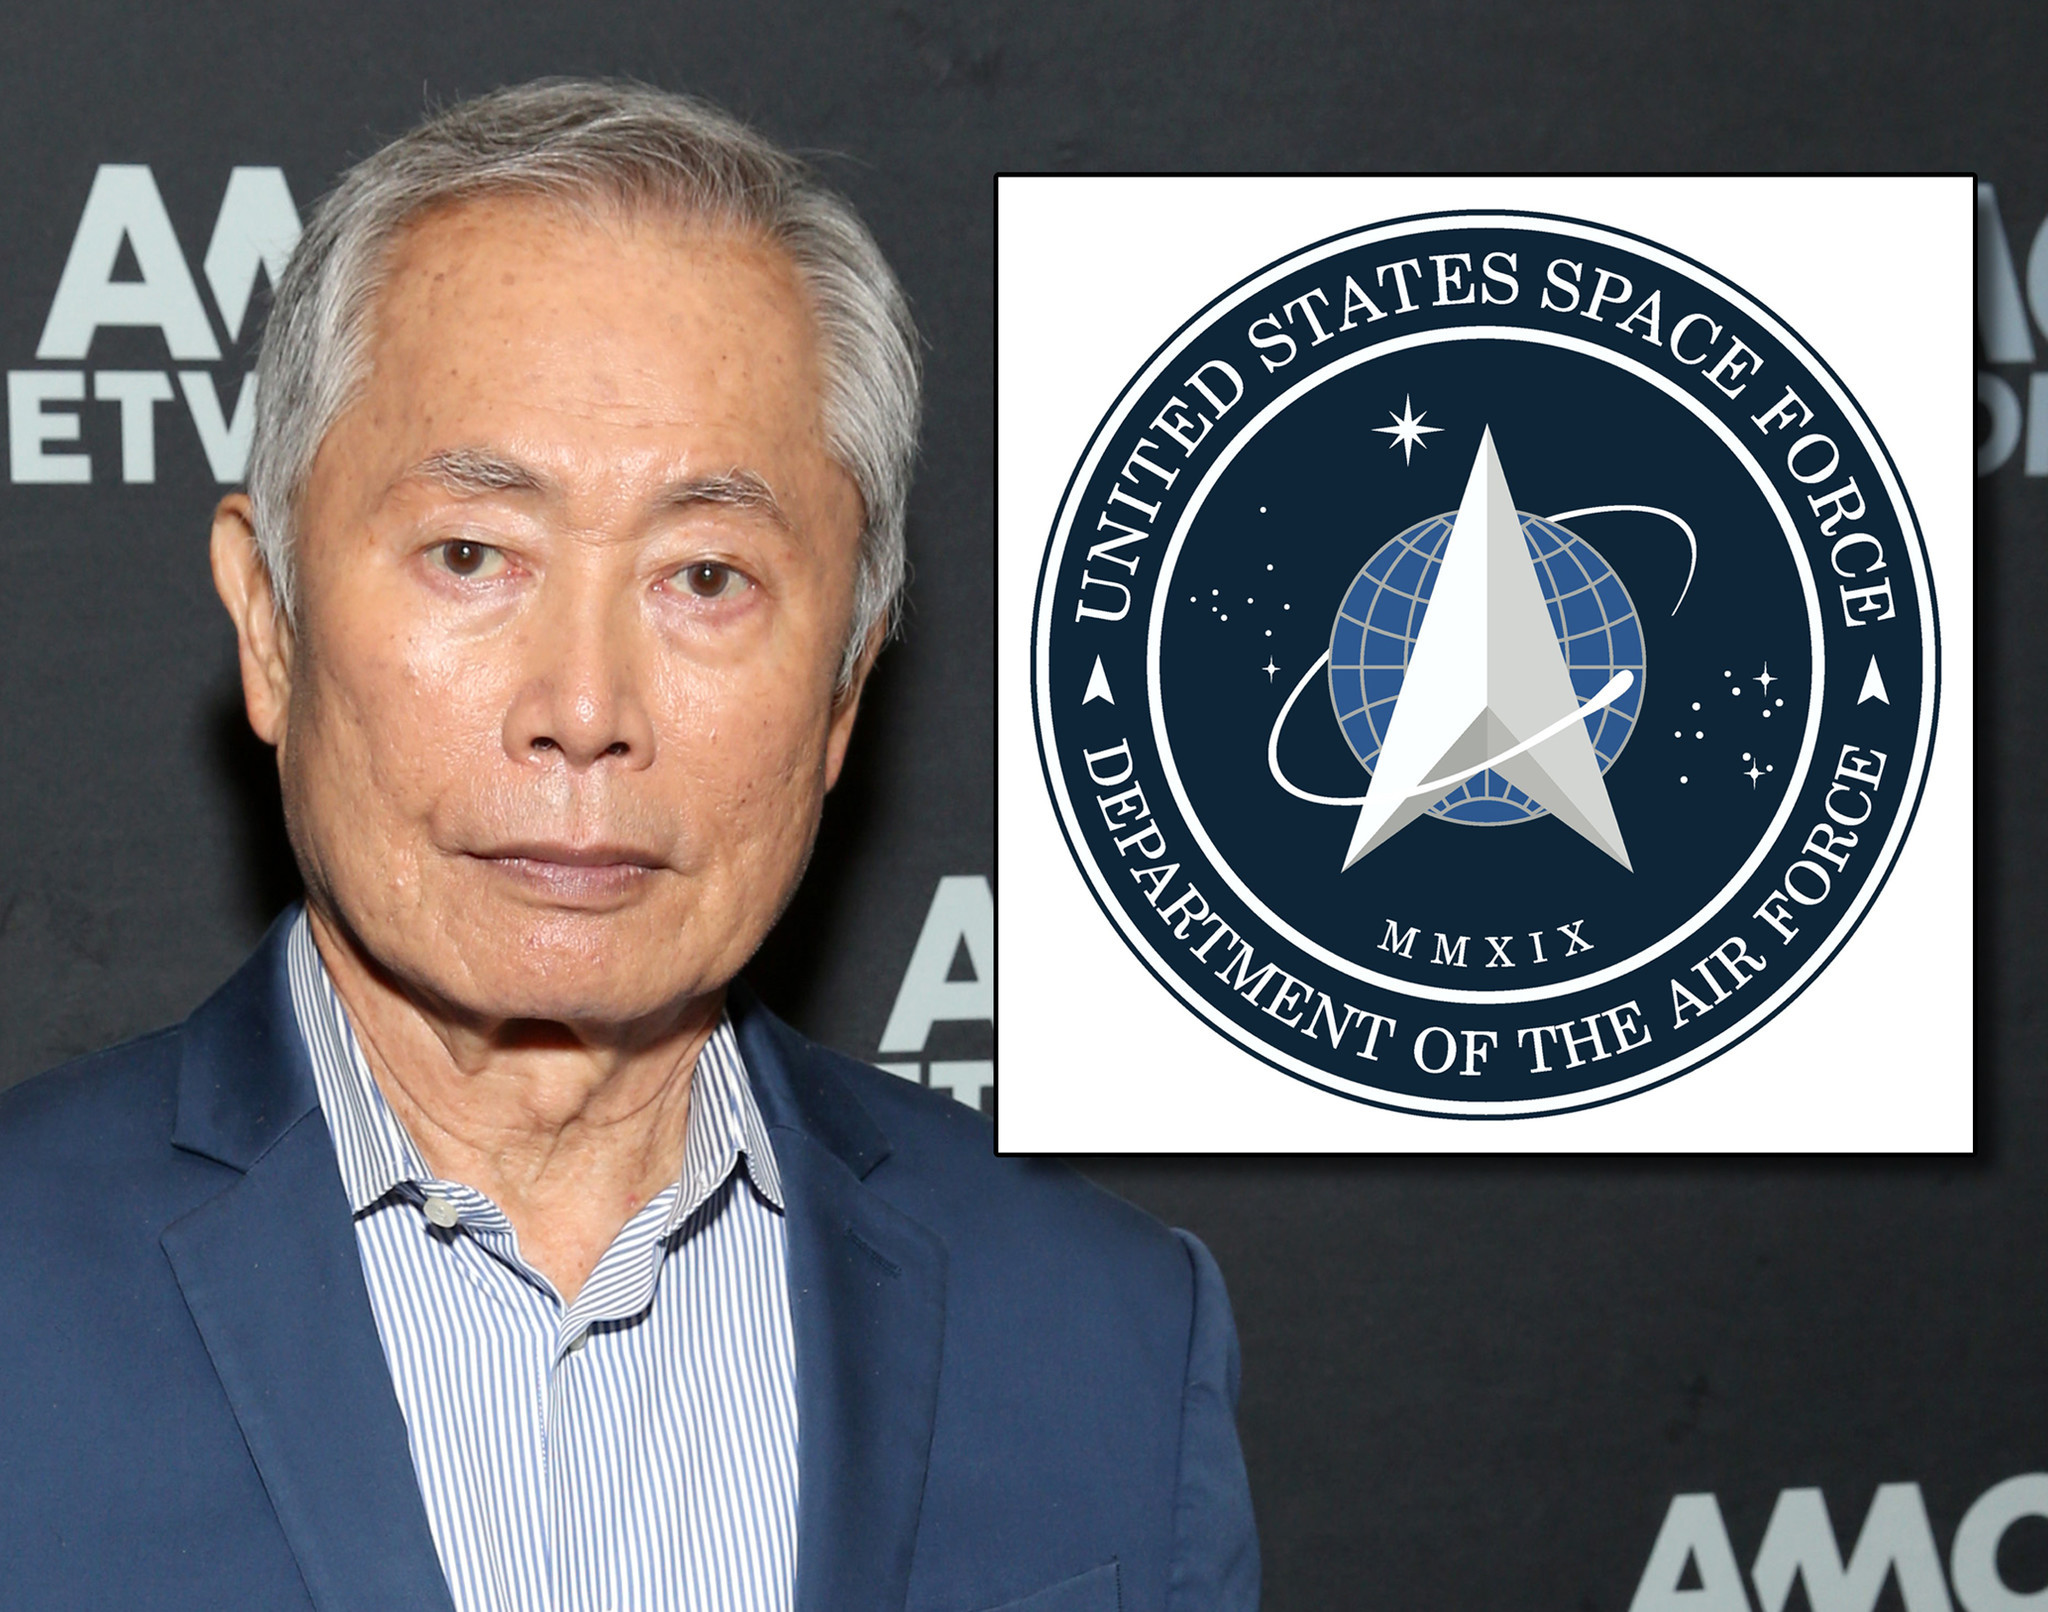 George Takei is not impressed by Space Force's 'Star Trek-like logo